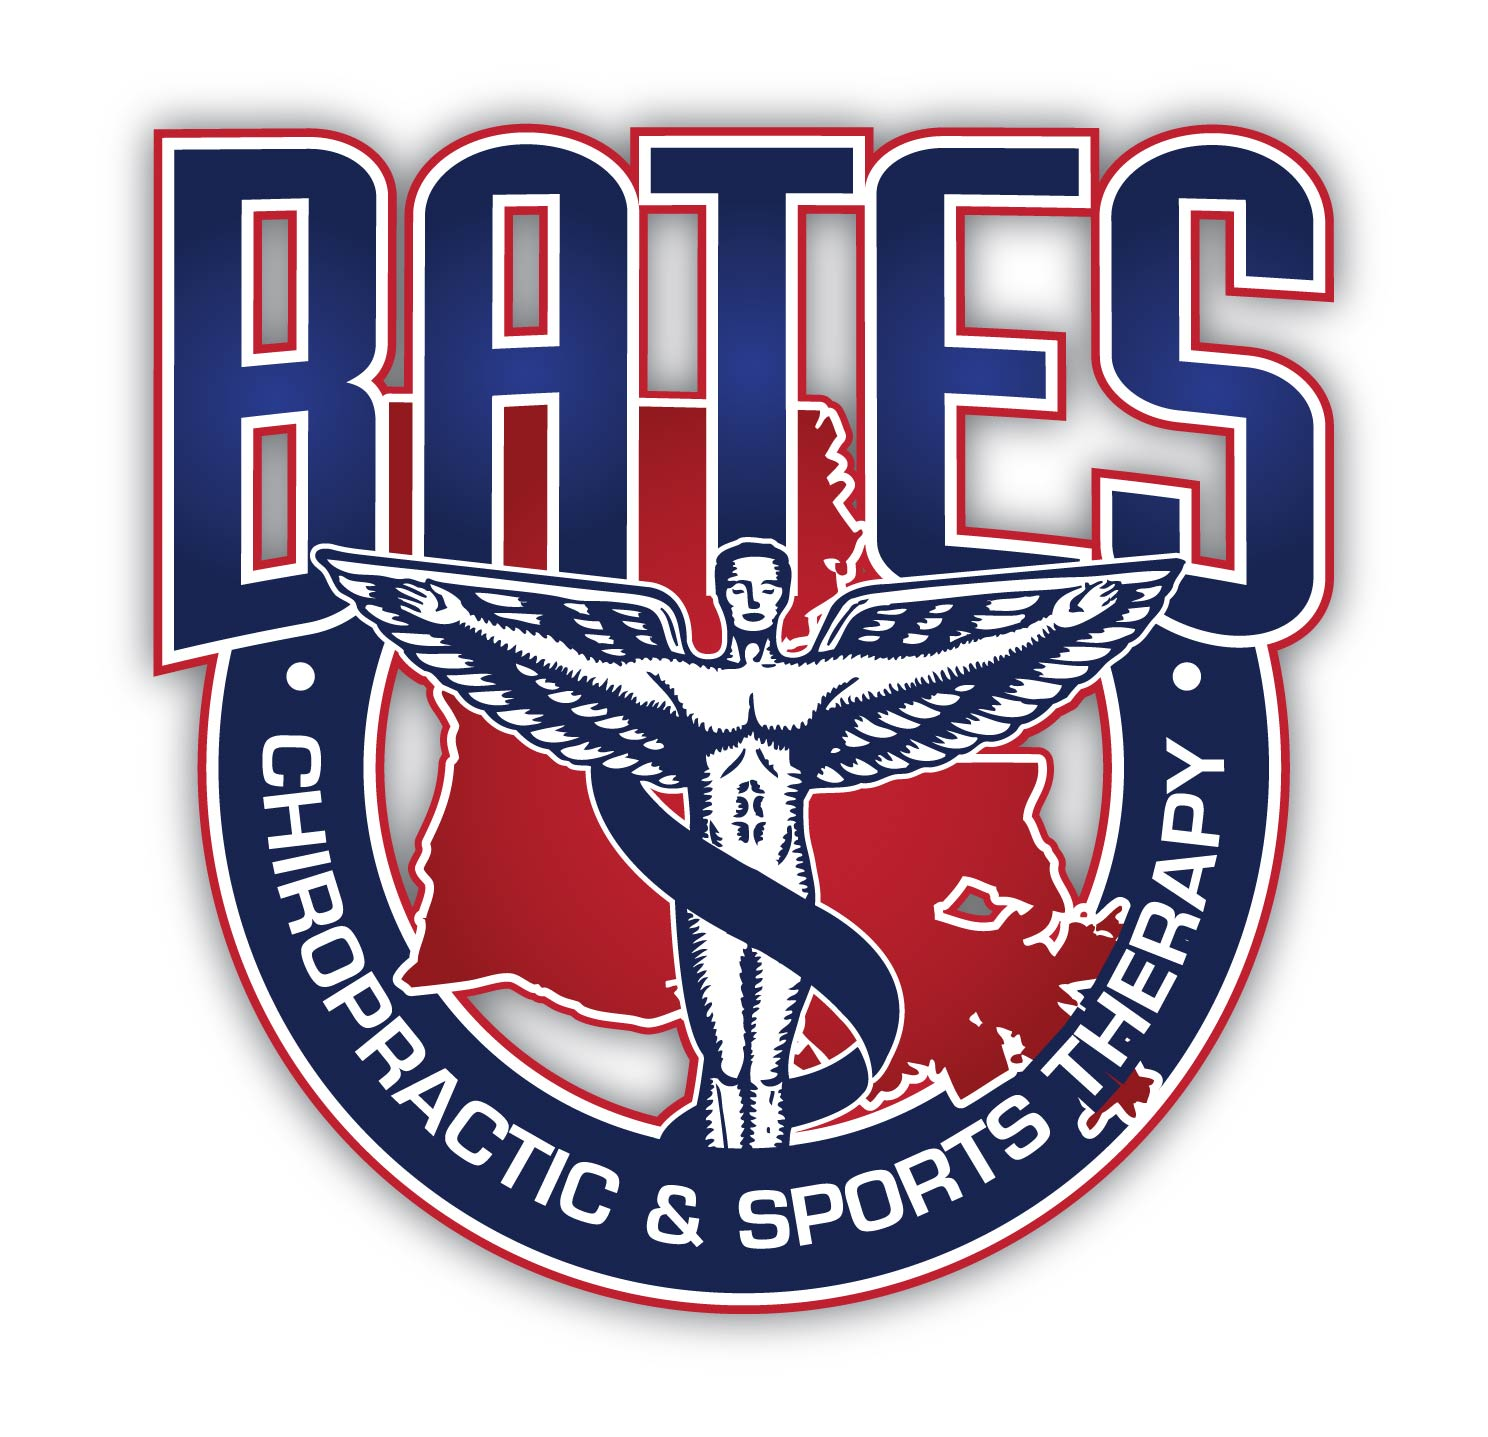 Bates Chiropractic and Sports Therapy